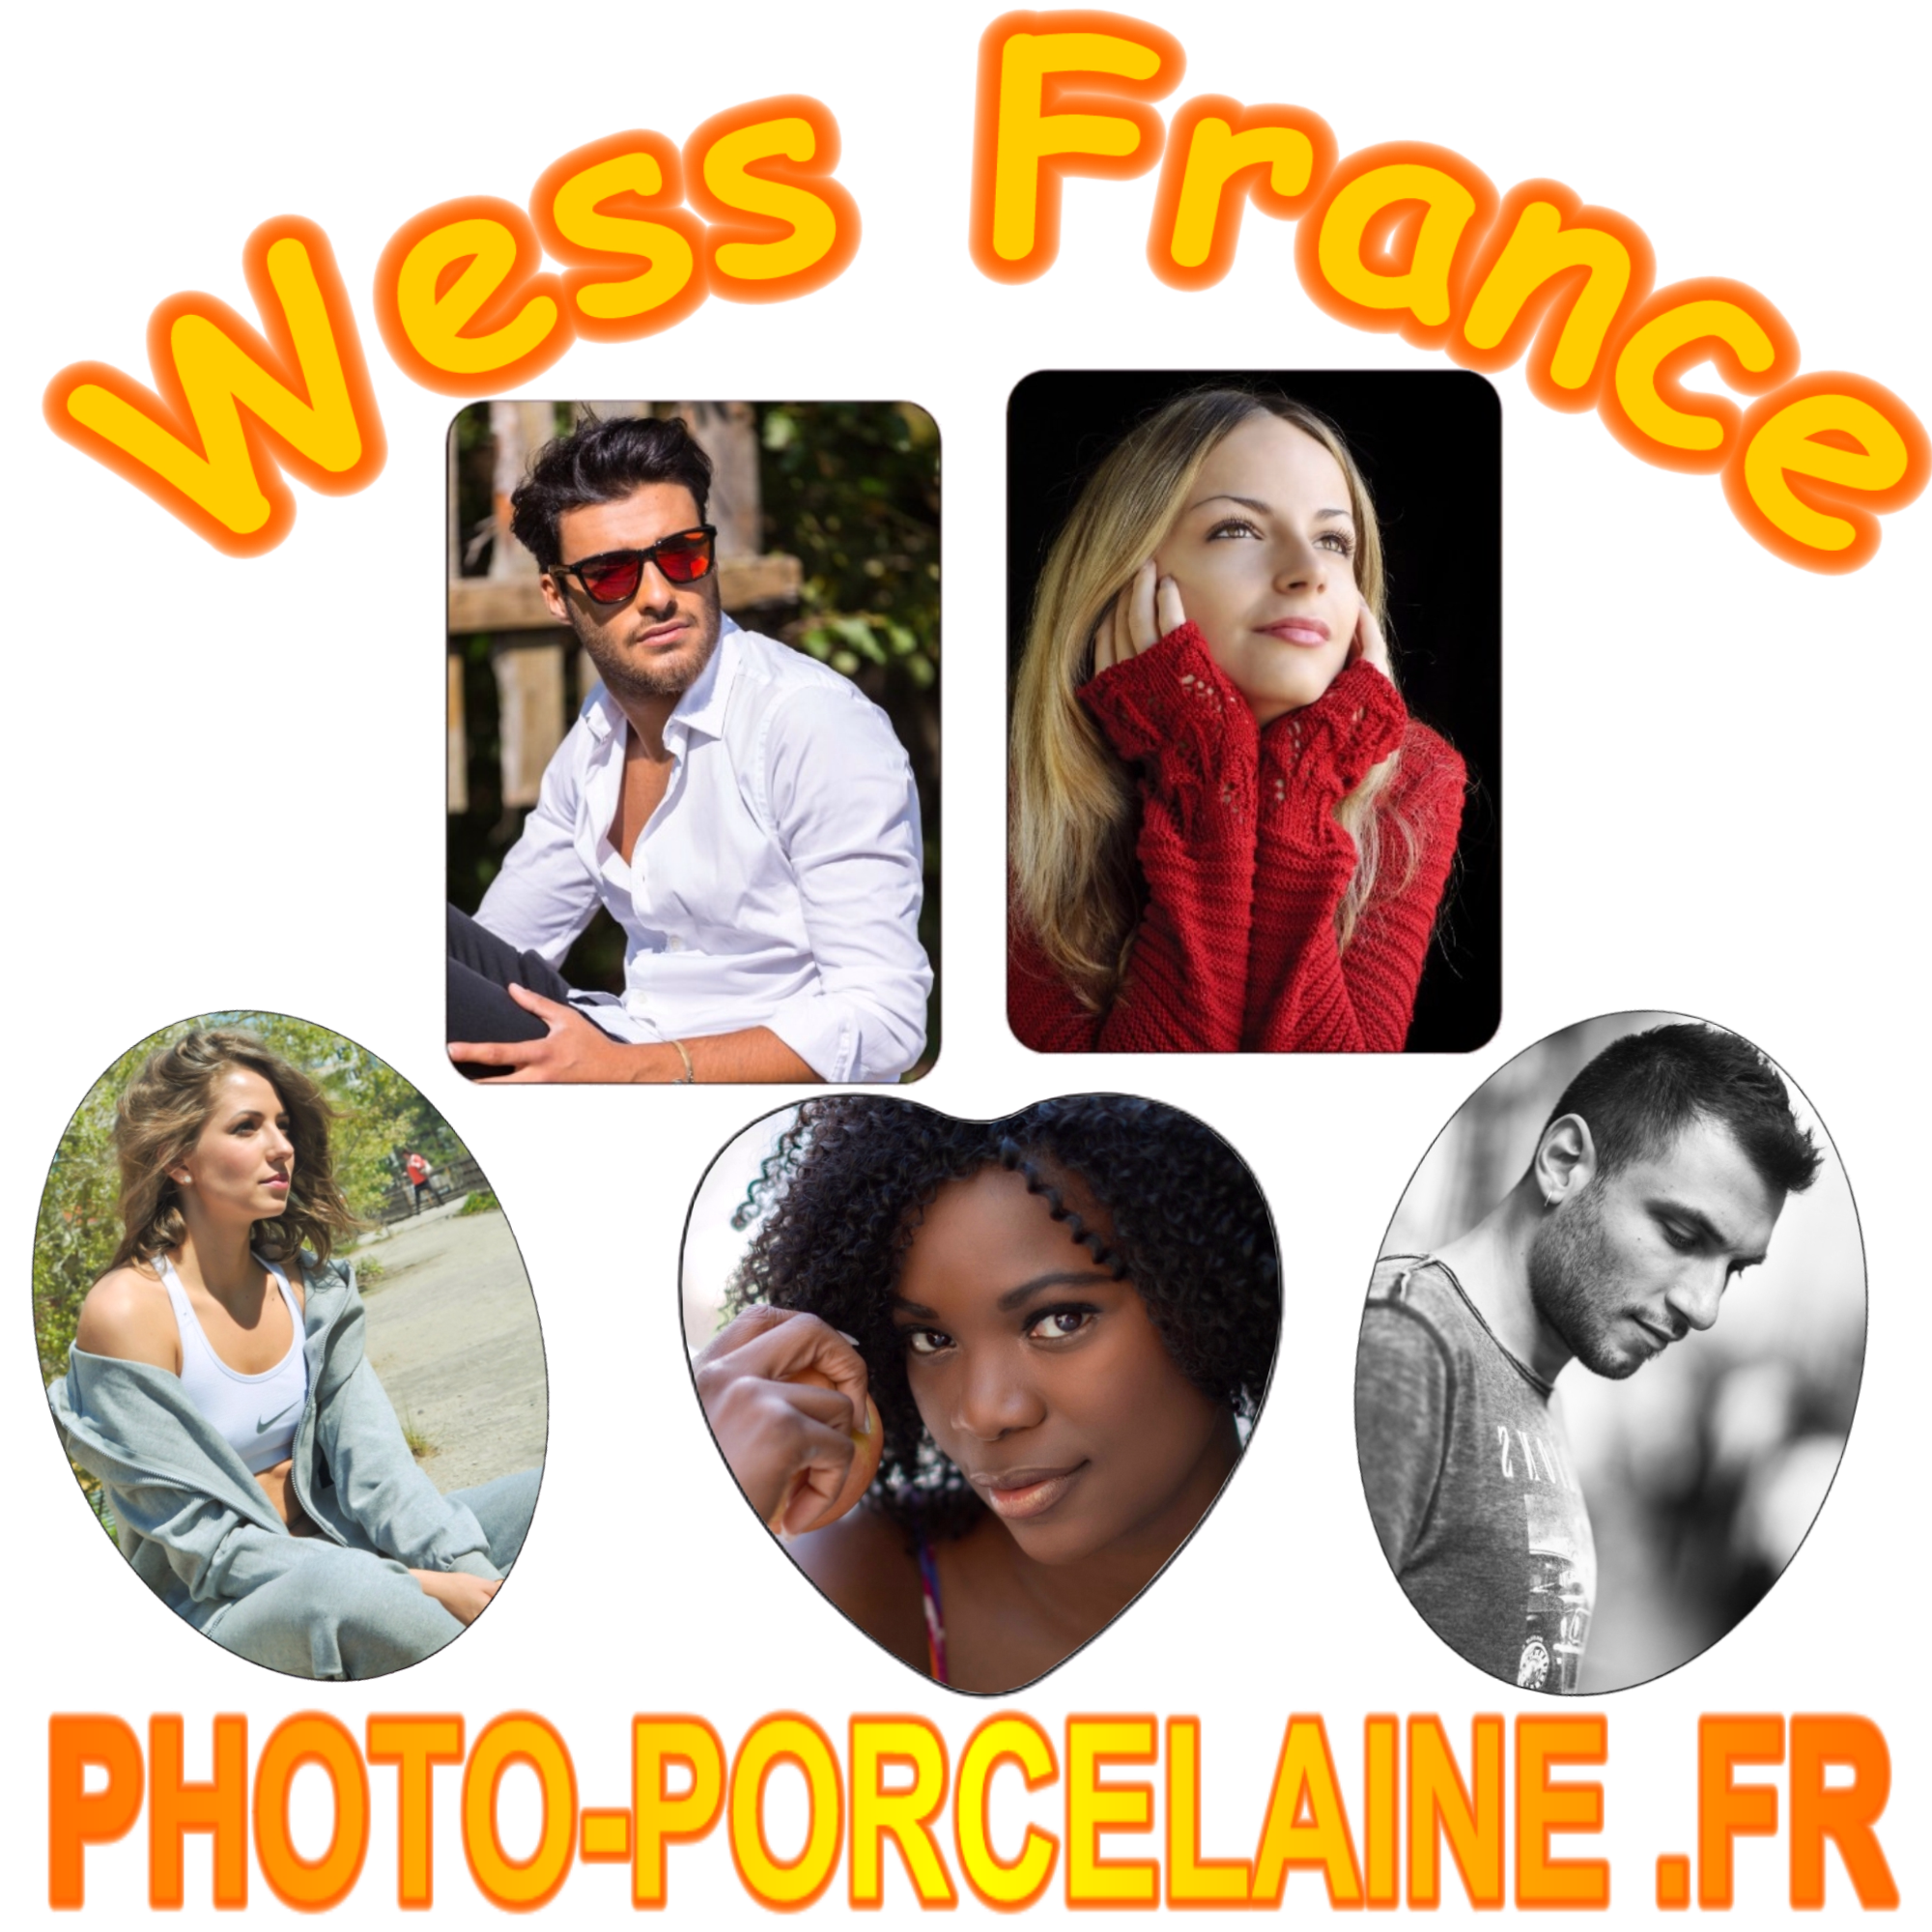 Photo Porcelaine (Wess France)